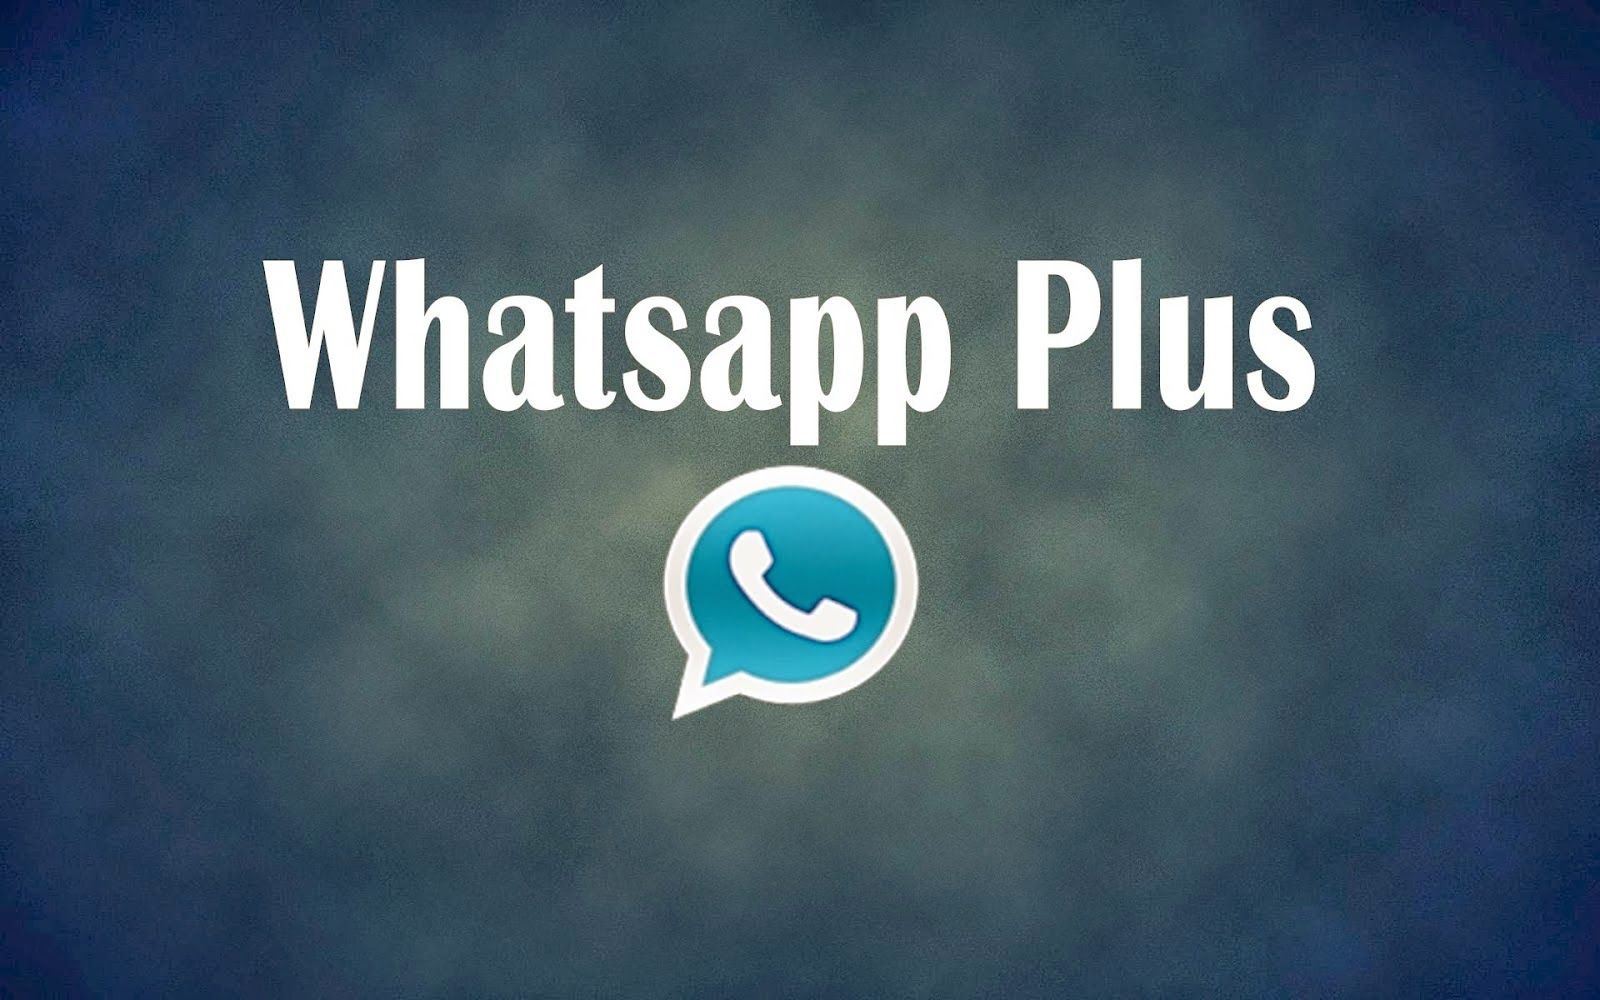 WhatsApp PLUS v.5.75D Unlock [Act.4 junio 2014] [No root] [Android]